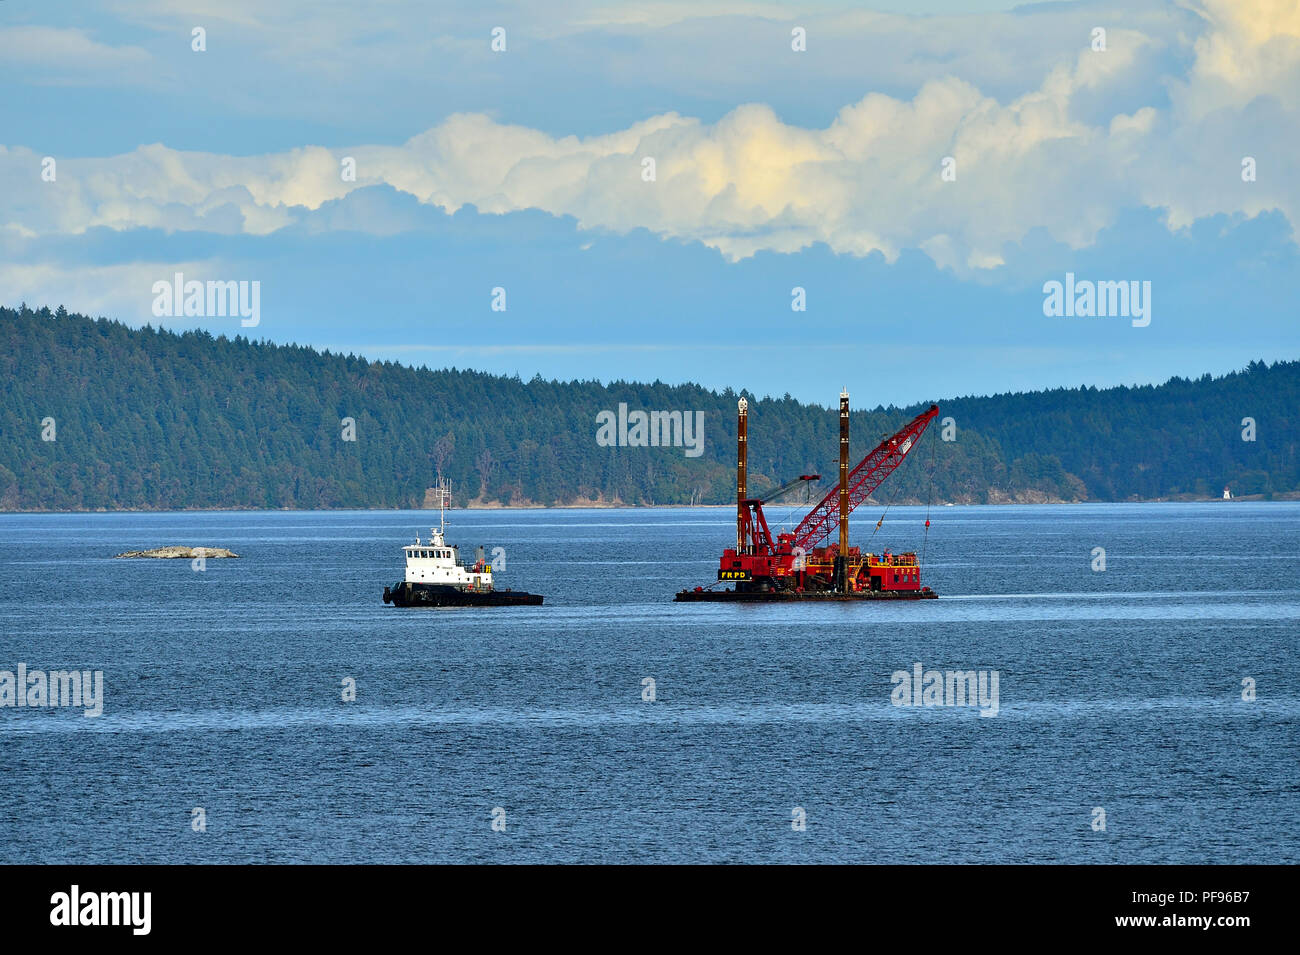 A tug boat hauling a barge with a crane onboard traveling through the Strait of Georgia near Vancouver Island on British Columbia's Pacific coast. - Stock Image